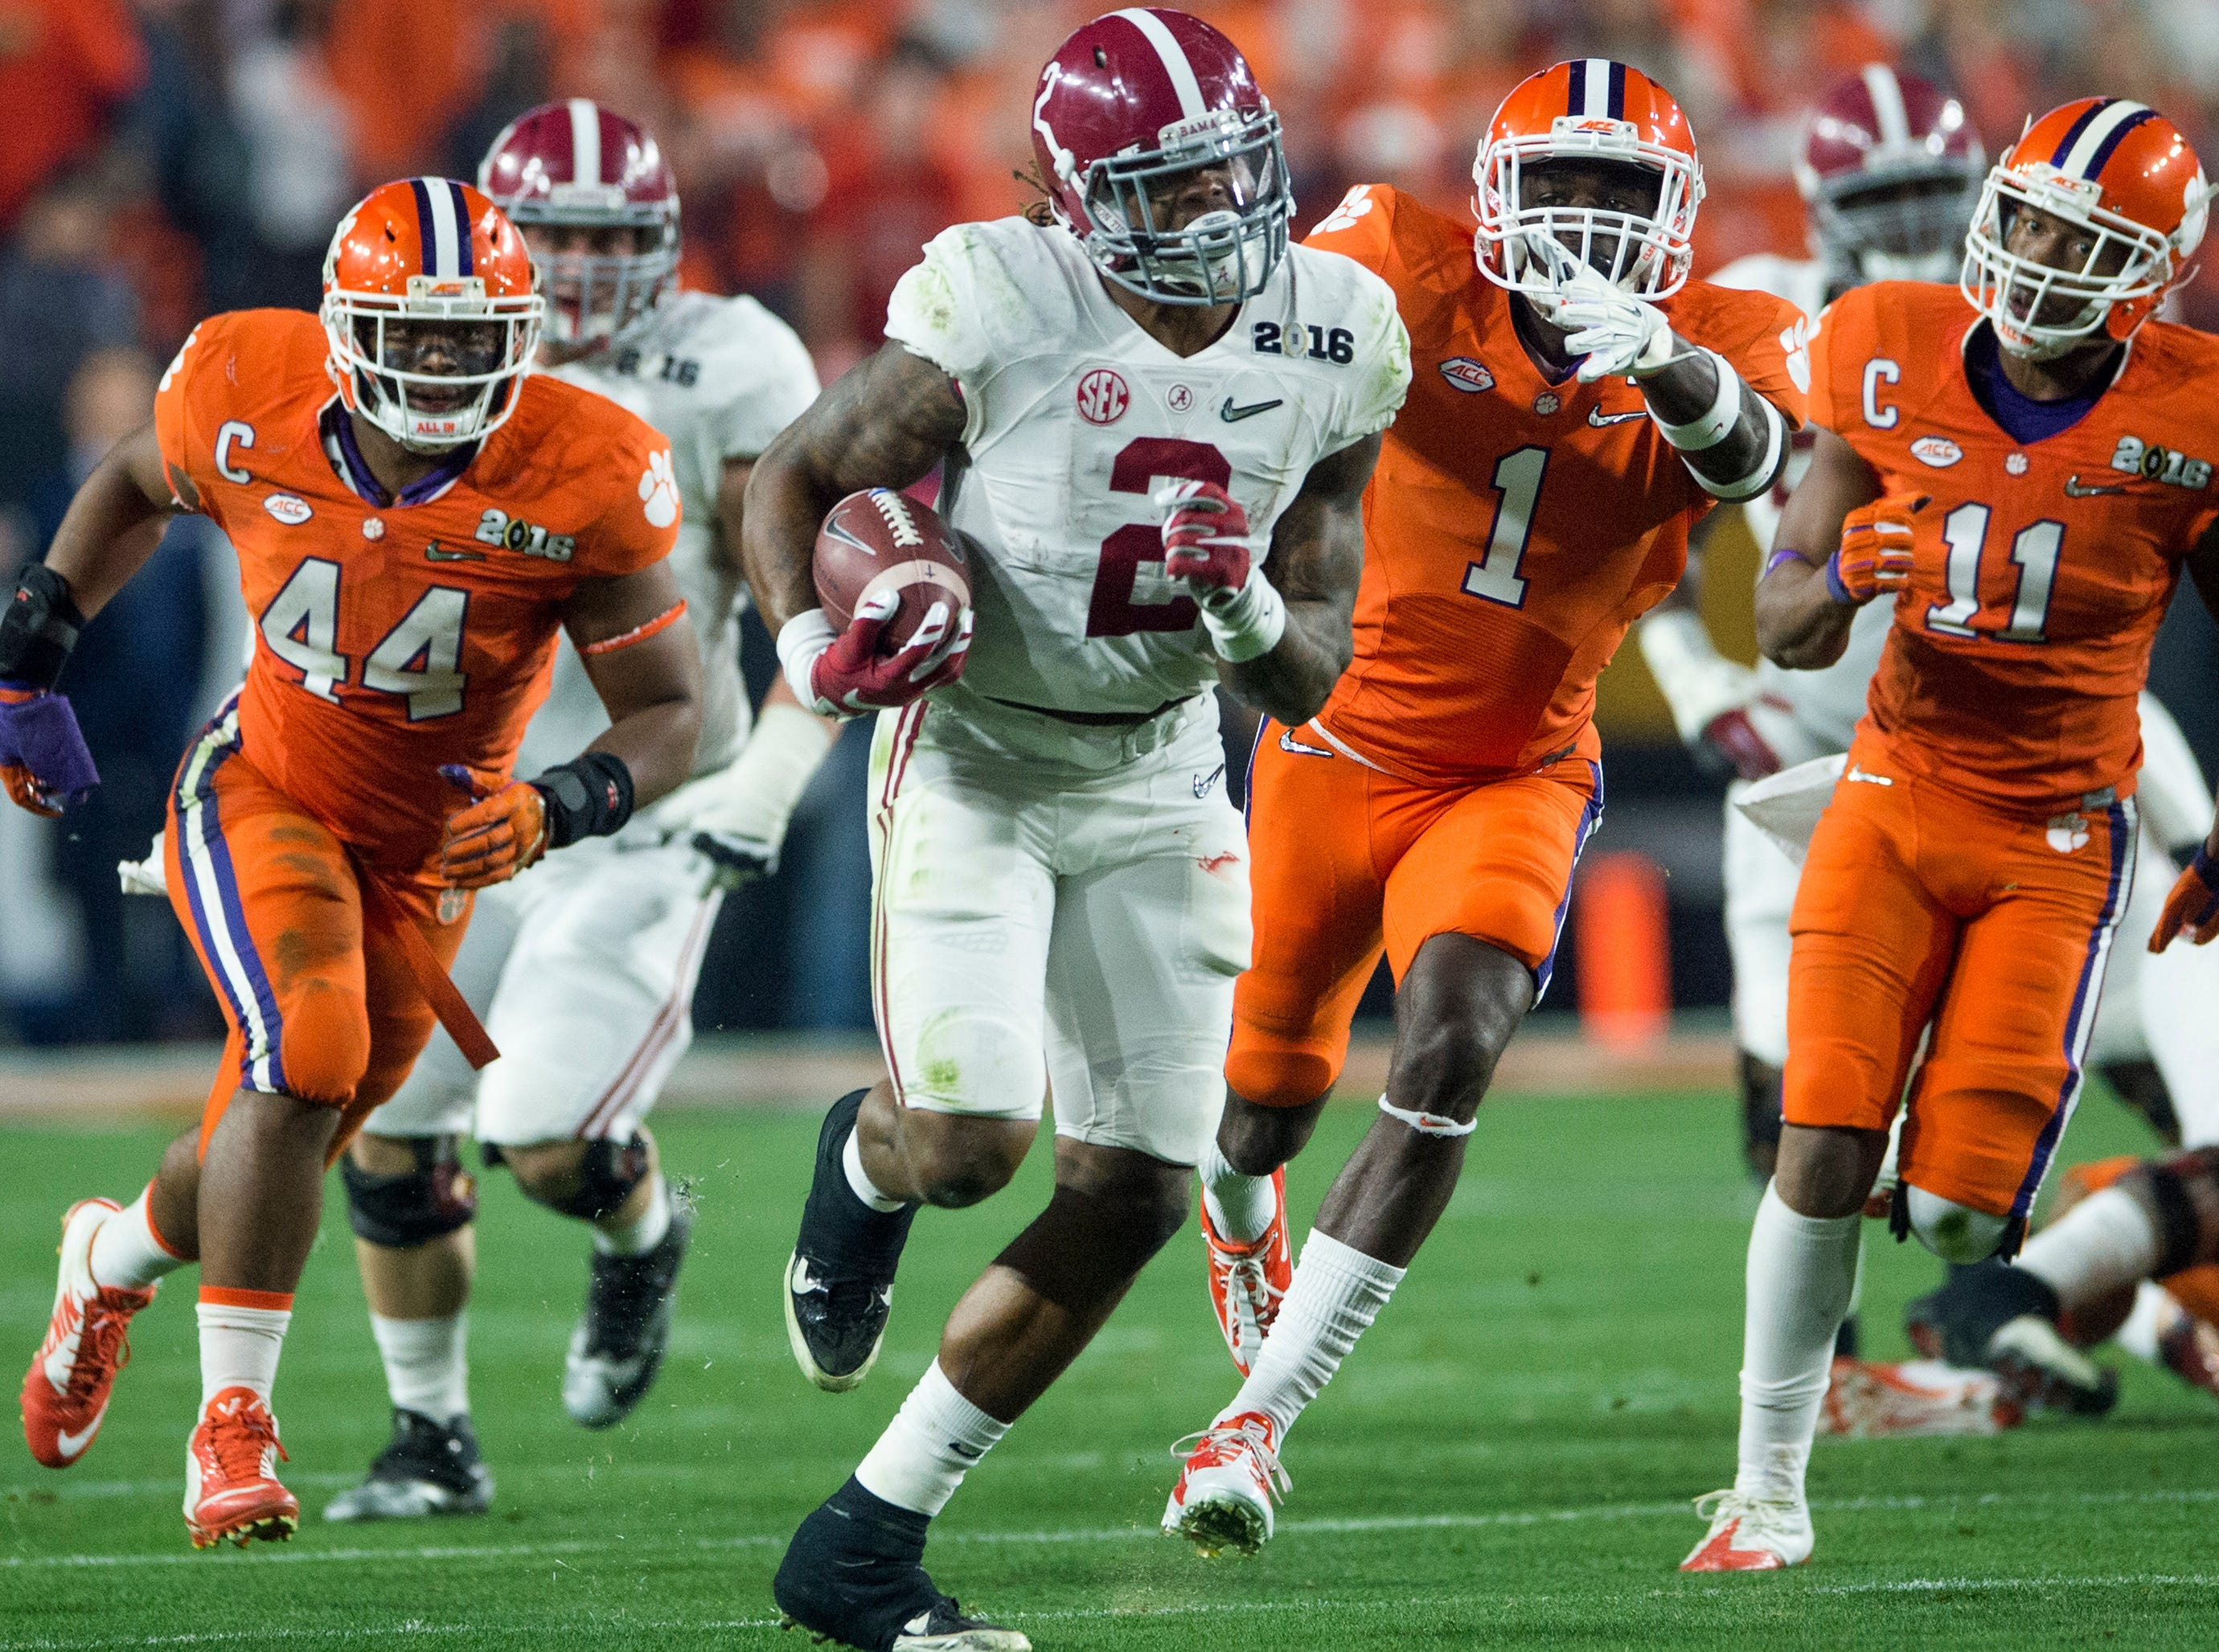 Alabama running back Derrick Henry (2) gets by Clemson safety Jayron Kearse (1) for a long first quarter touchdown in the College Football Playoff Championship Game on Monday January 11, 2016 at University of Phoenix Stadium in Glendale, Az.